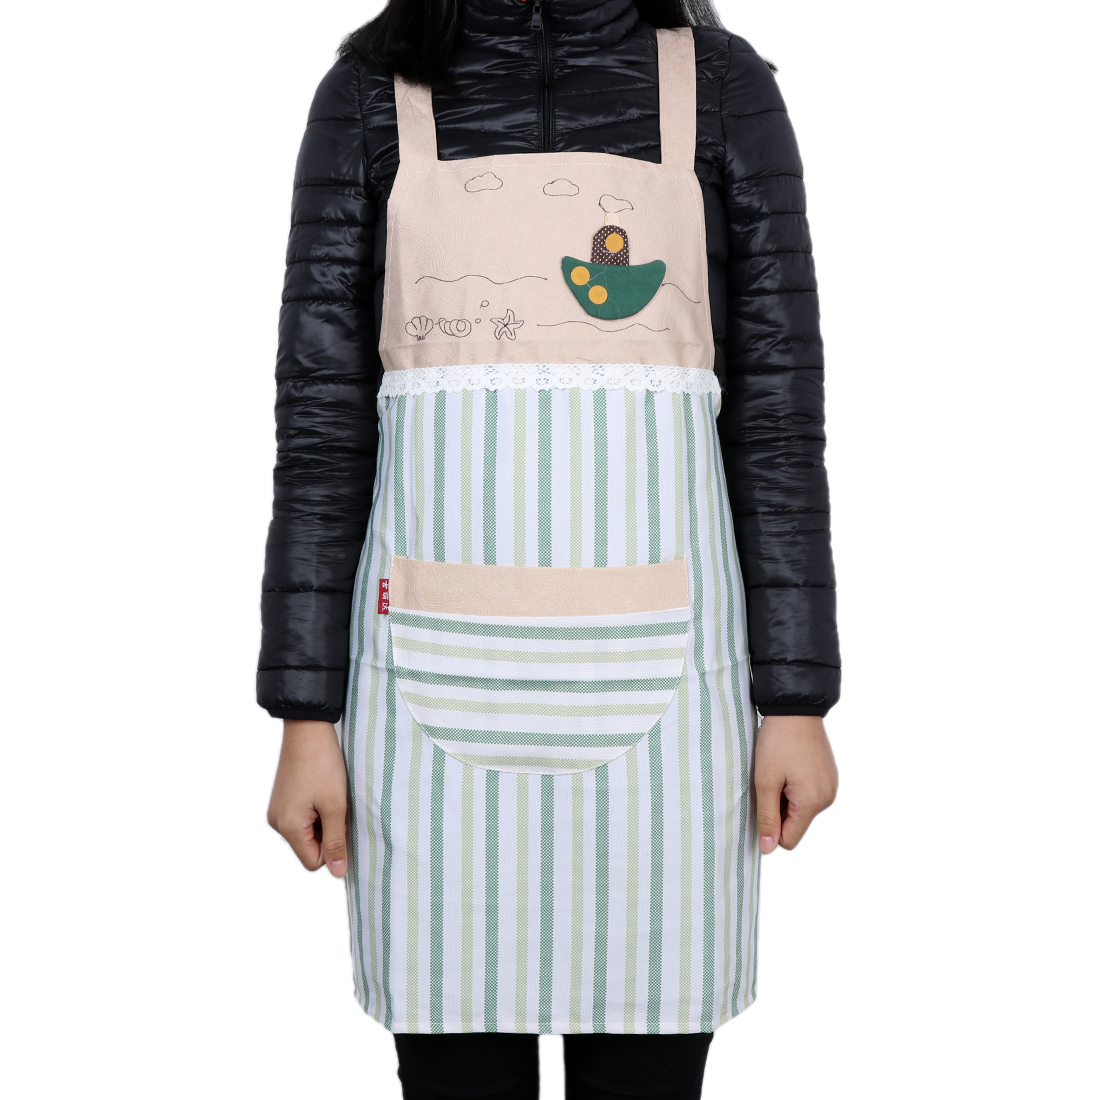 Stripes Style Lady Chefs Butchers Apron with Pocket Gift